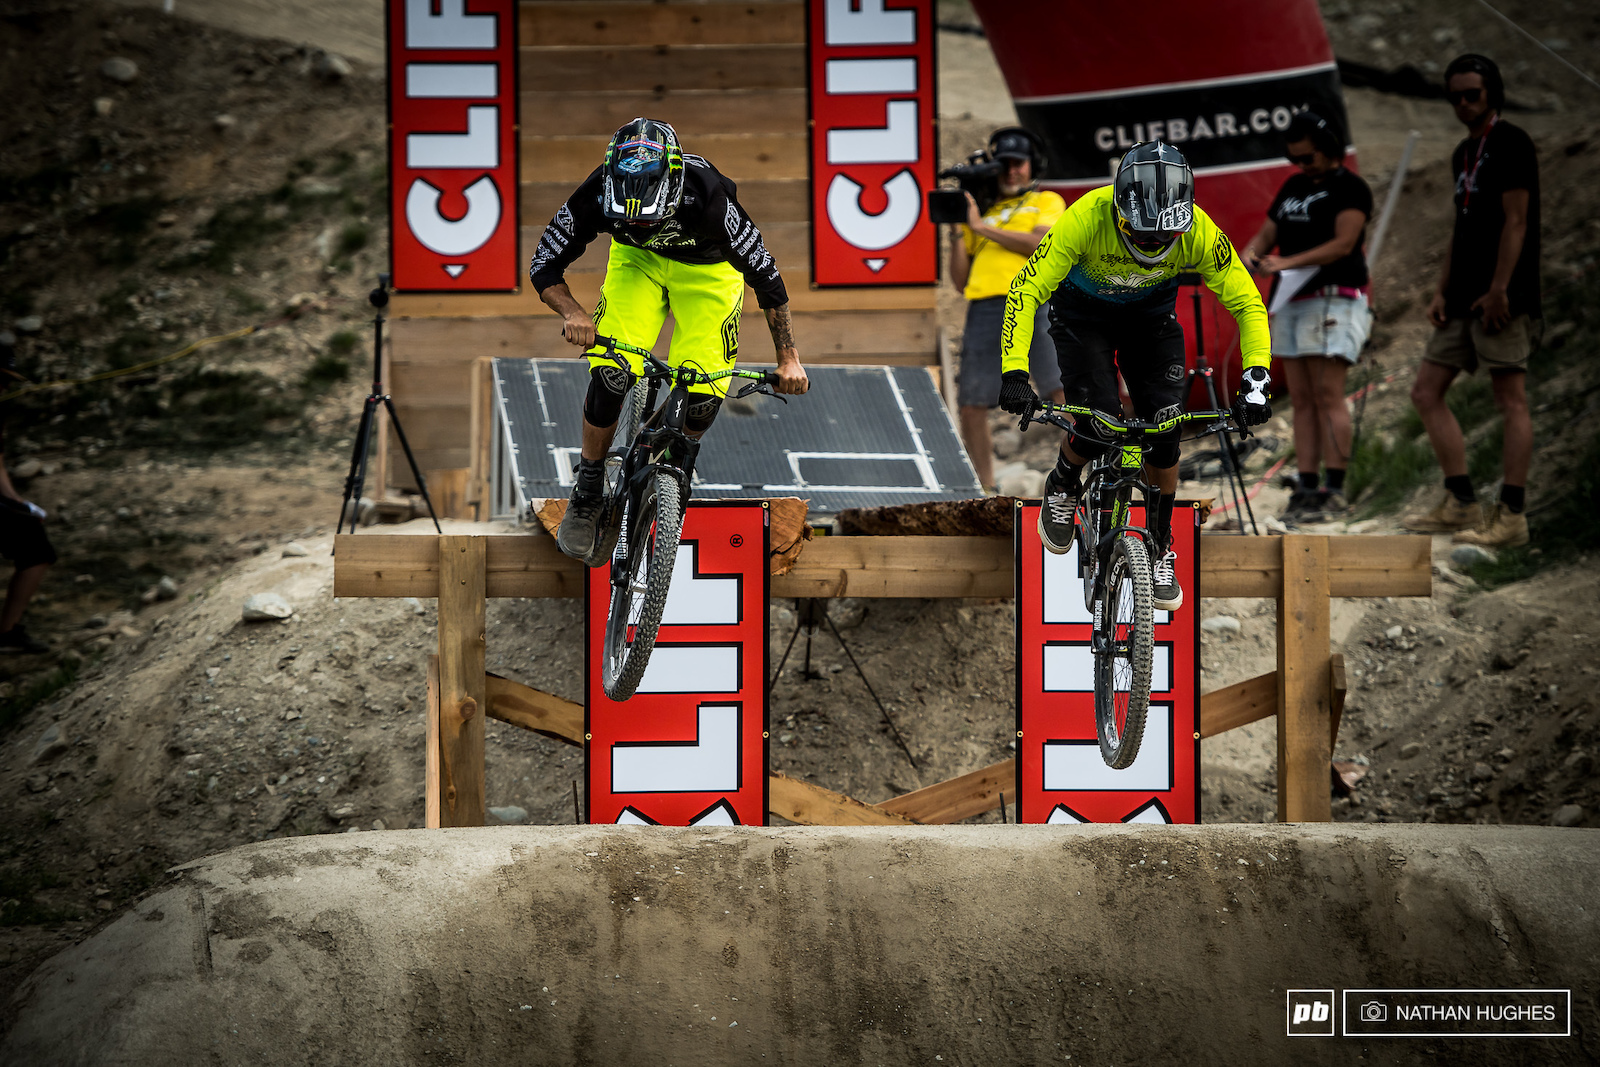 The new Clif start gate allowed riders to stomp about 3 pedal strokes before dropping onto the dirt.